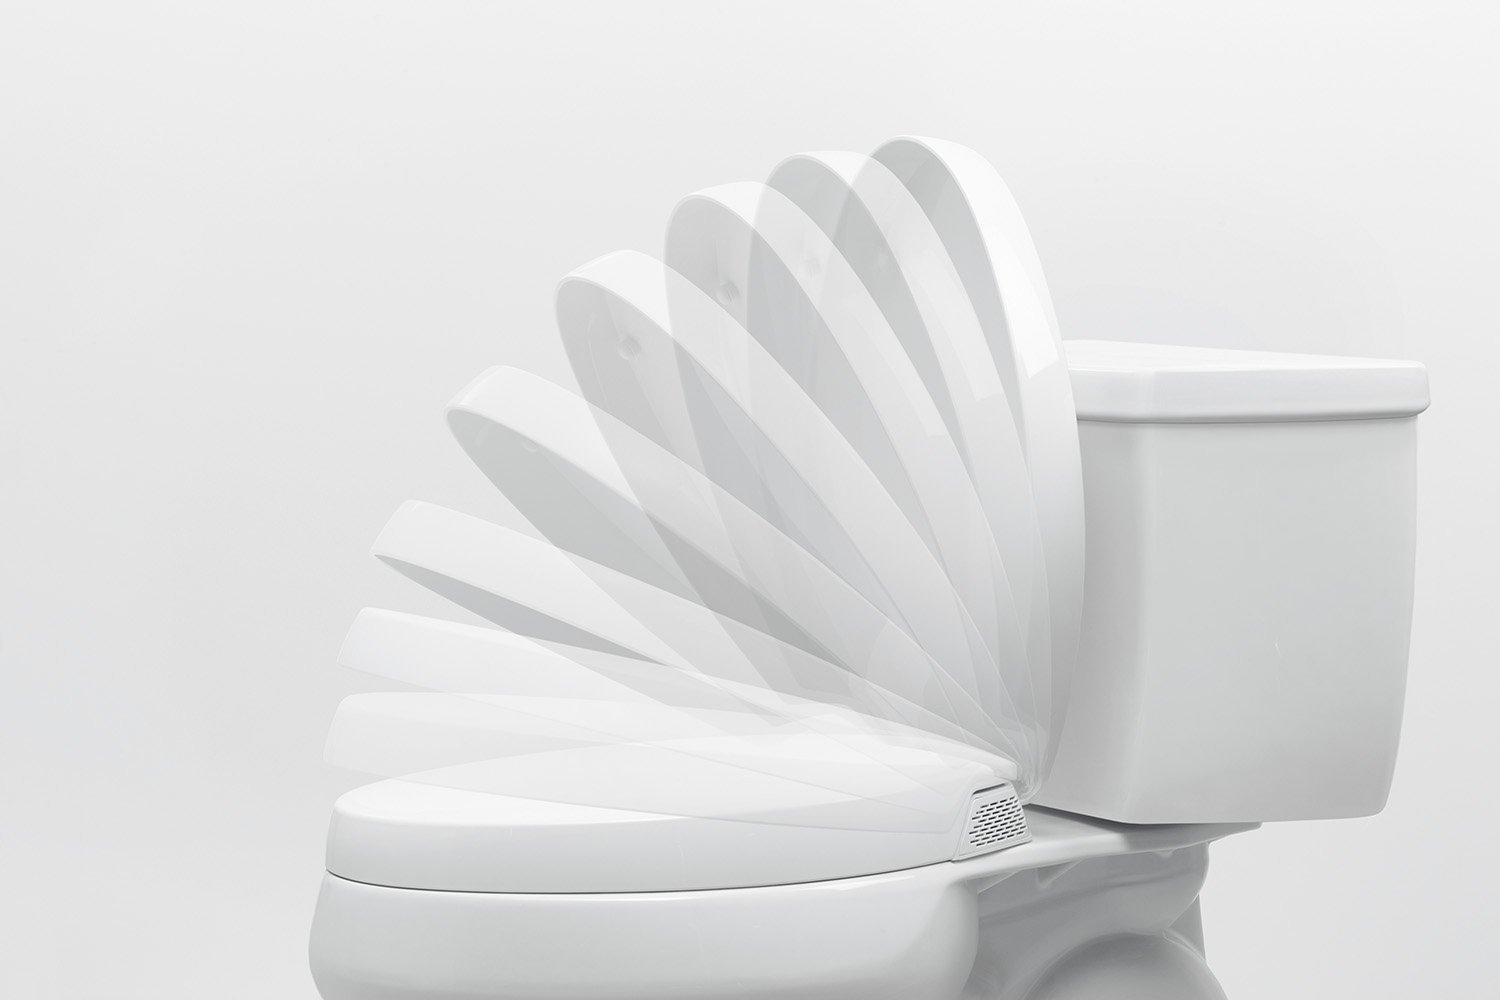 Kohler Purefresh Toilet Seat | Amazon